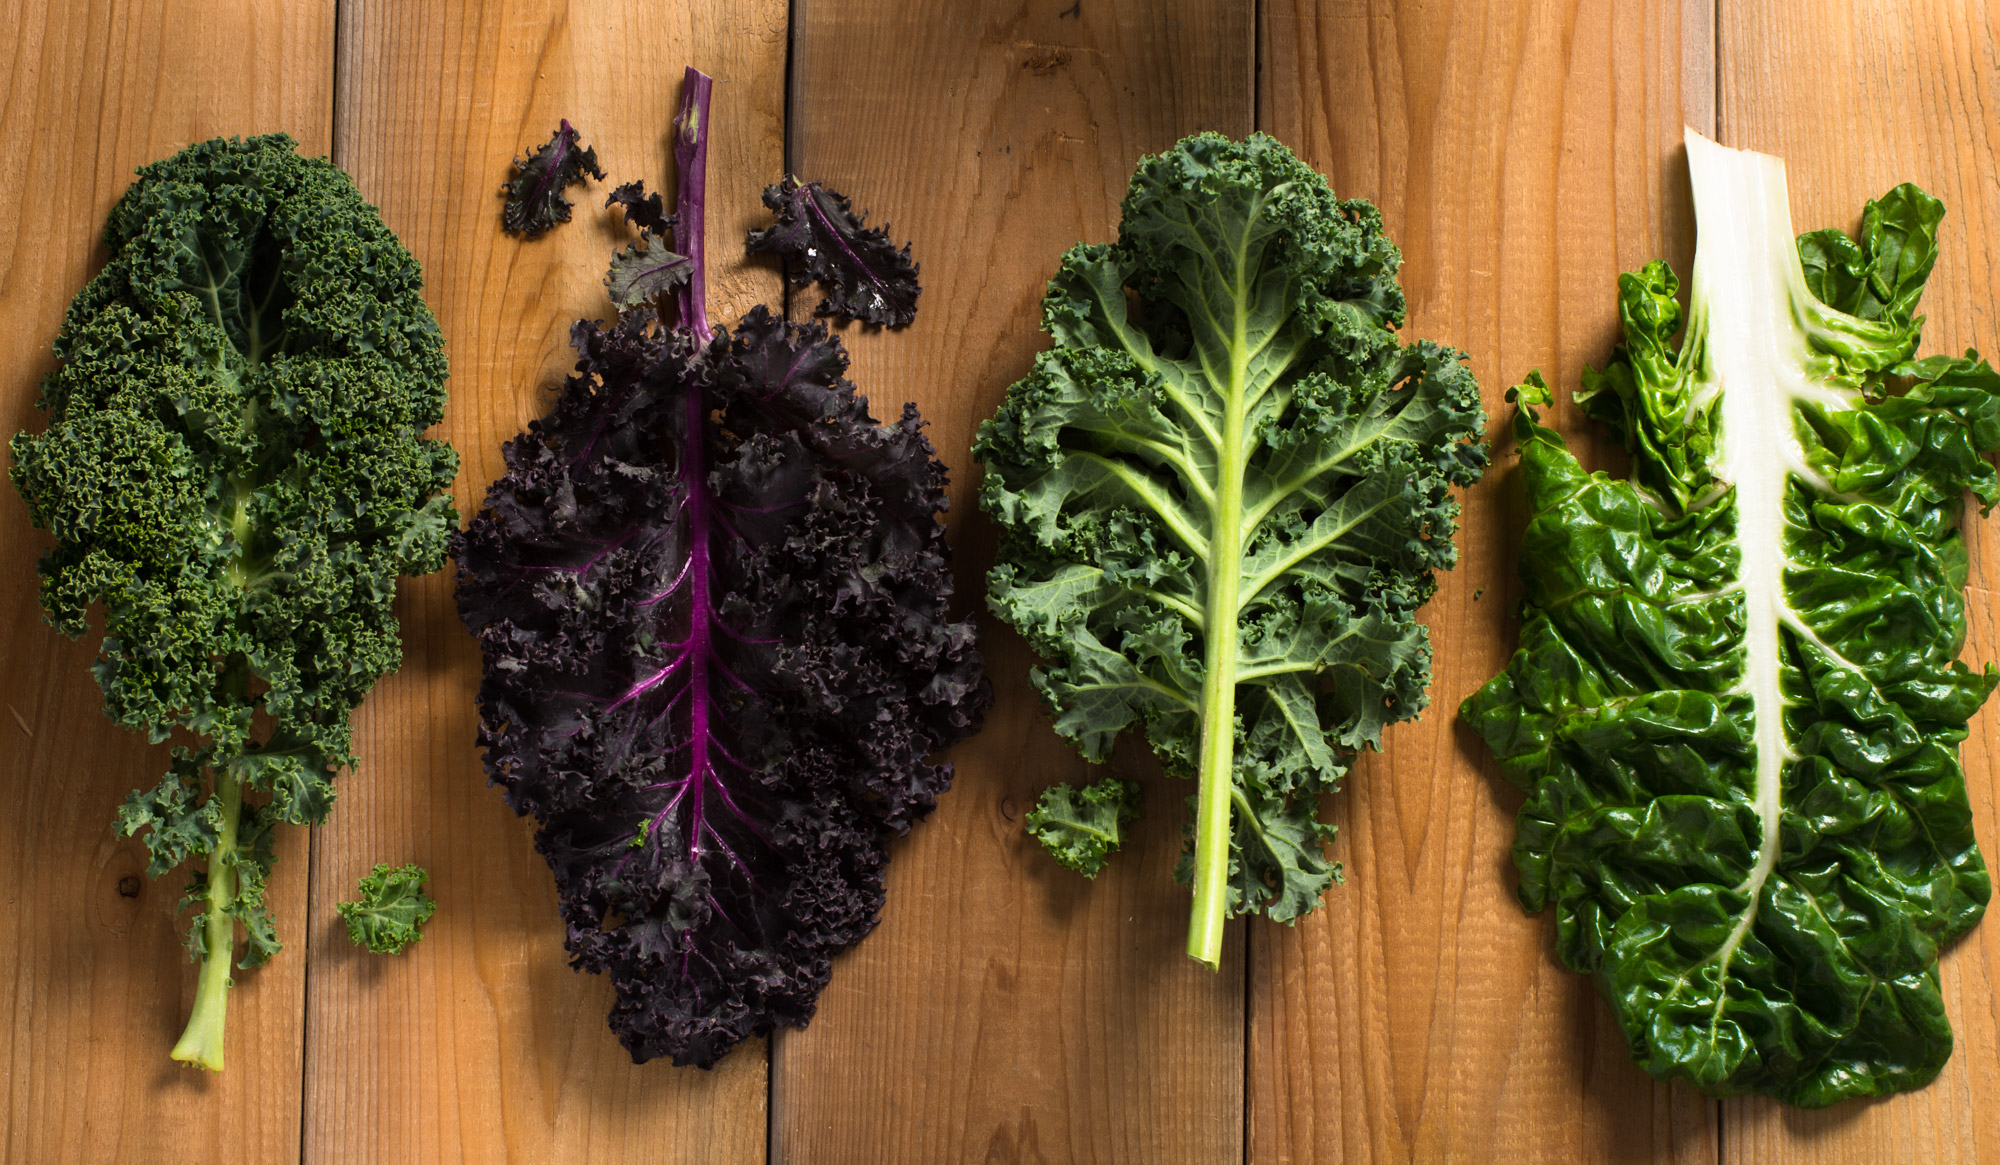 Kale and collard greens on wood surface